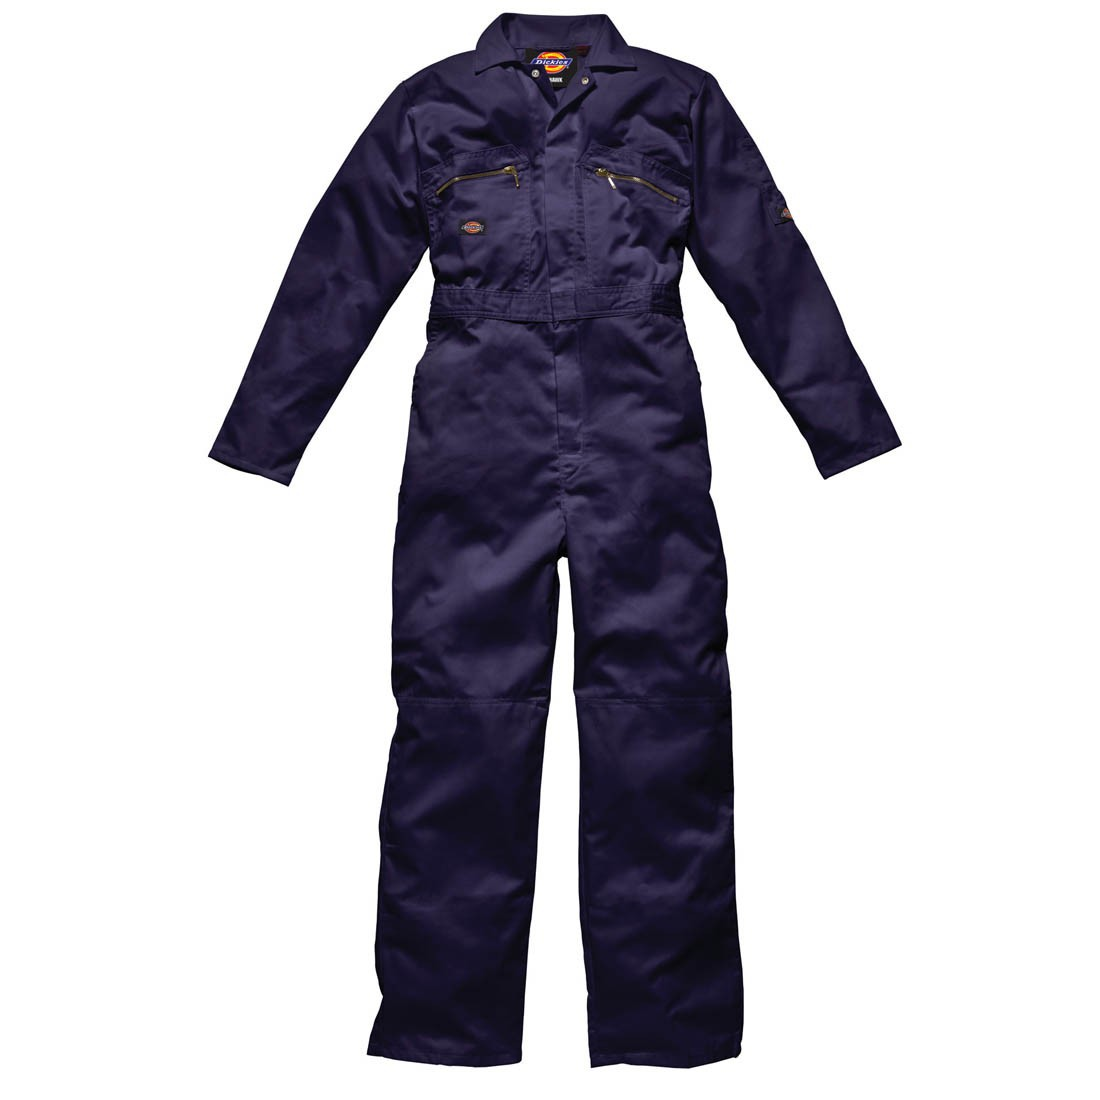 Dickies Redhawk Coverall - Navy Blue - 56 T